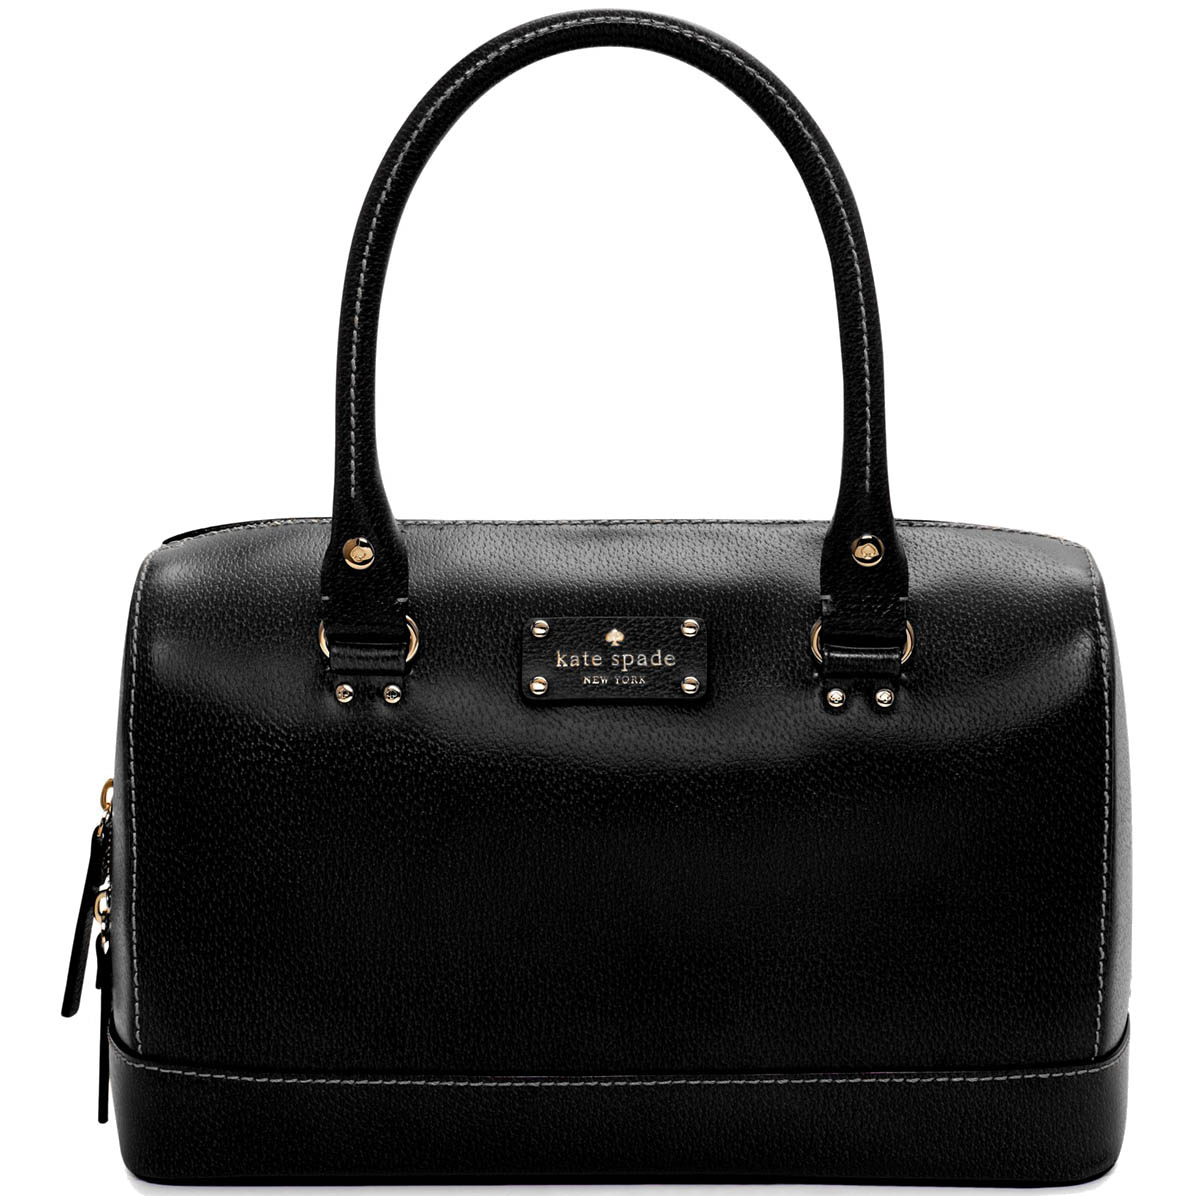 Kate Spade Wellesley Kaleigh Satchel Black # WKRU1444